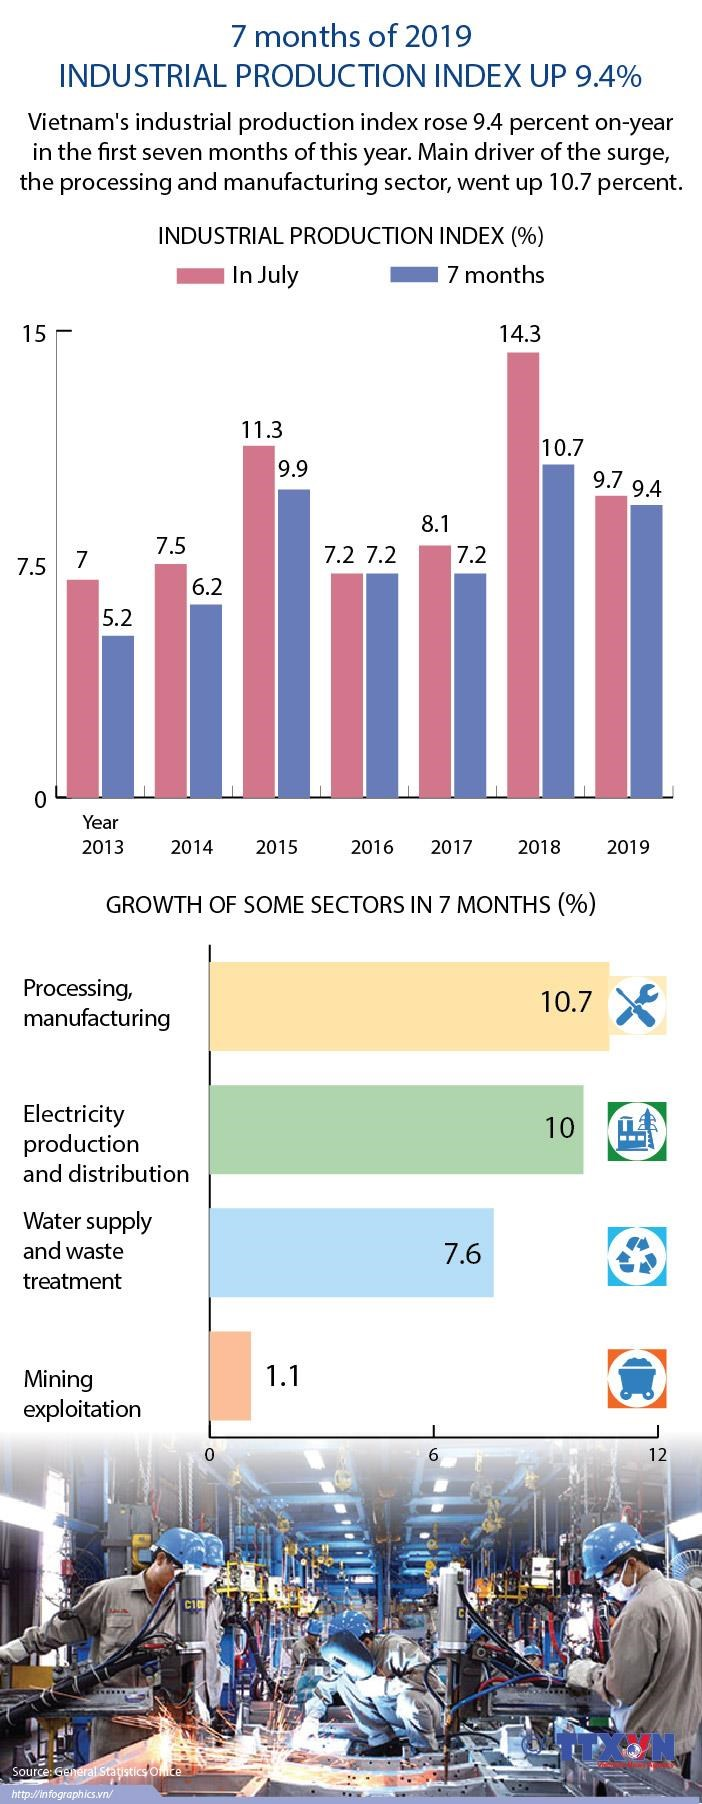 Industrial production index up 9.4% hinh anh 1